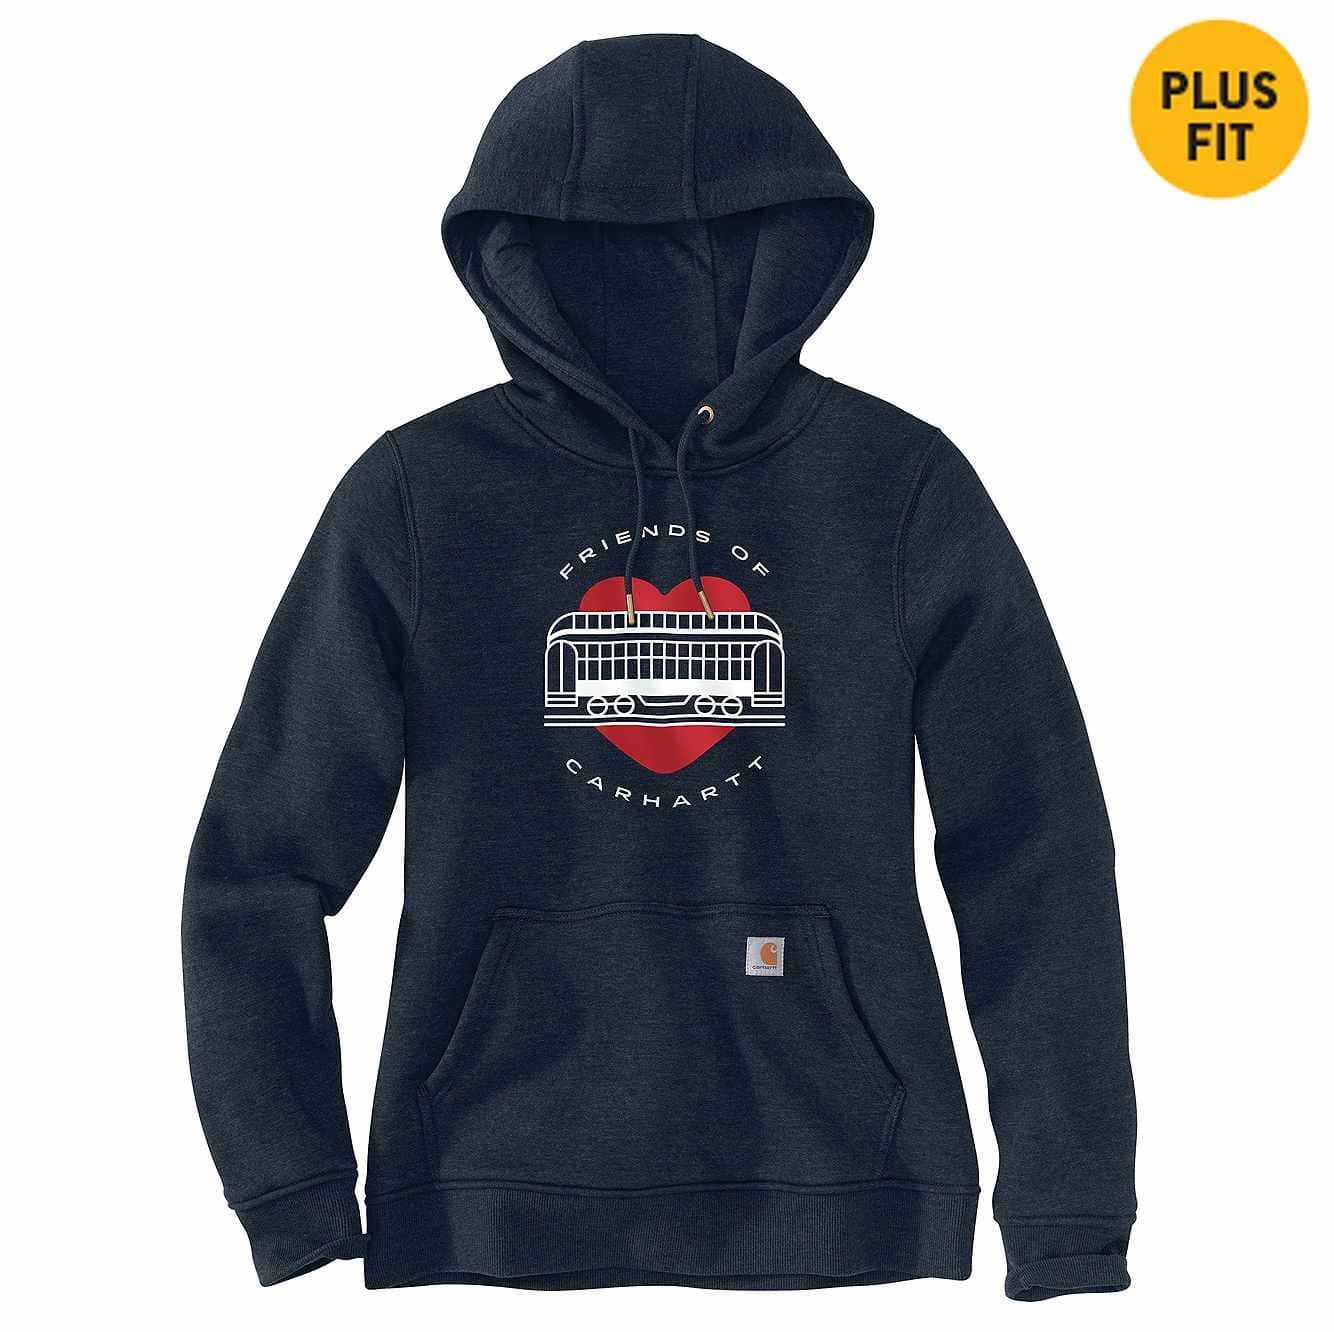 Picture of Women's Relaxed Fit Friends of Carhartt Sweatshirt in Navy